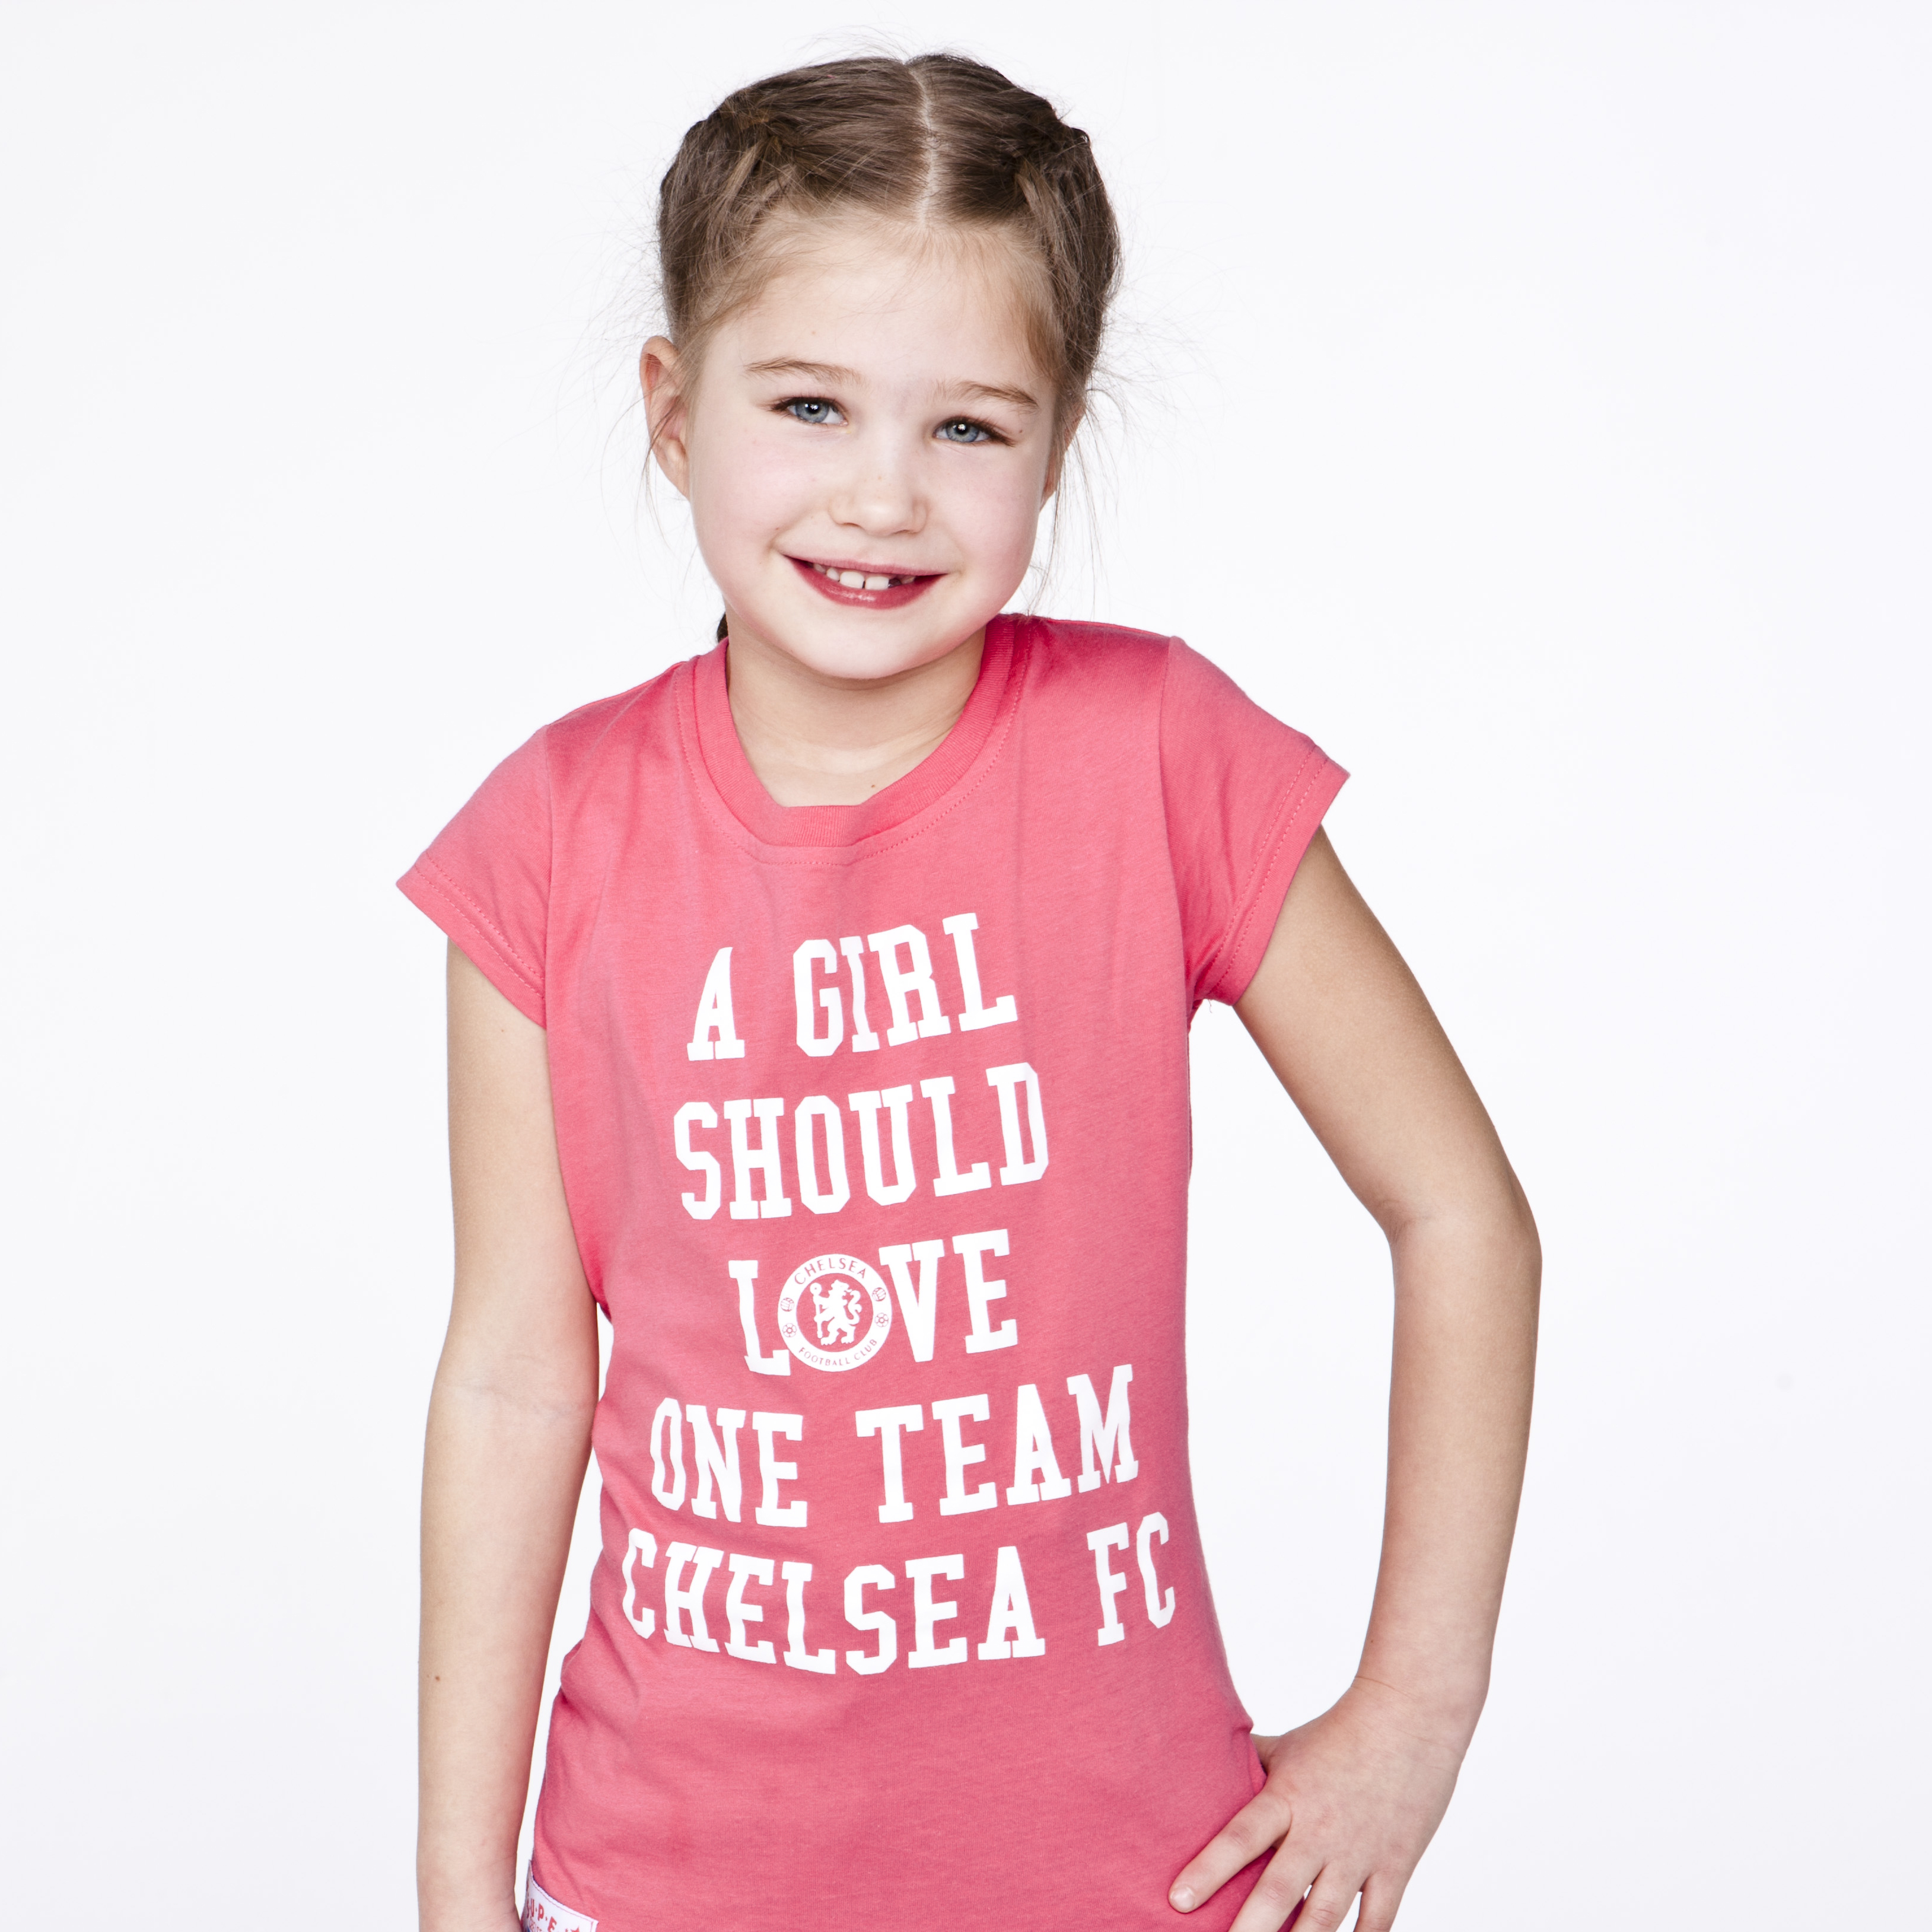 Chelsea Love One Team Graphic T-Shirt - Blush Pink - Girls